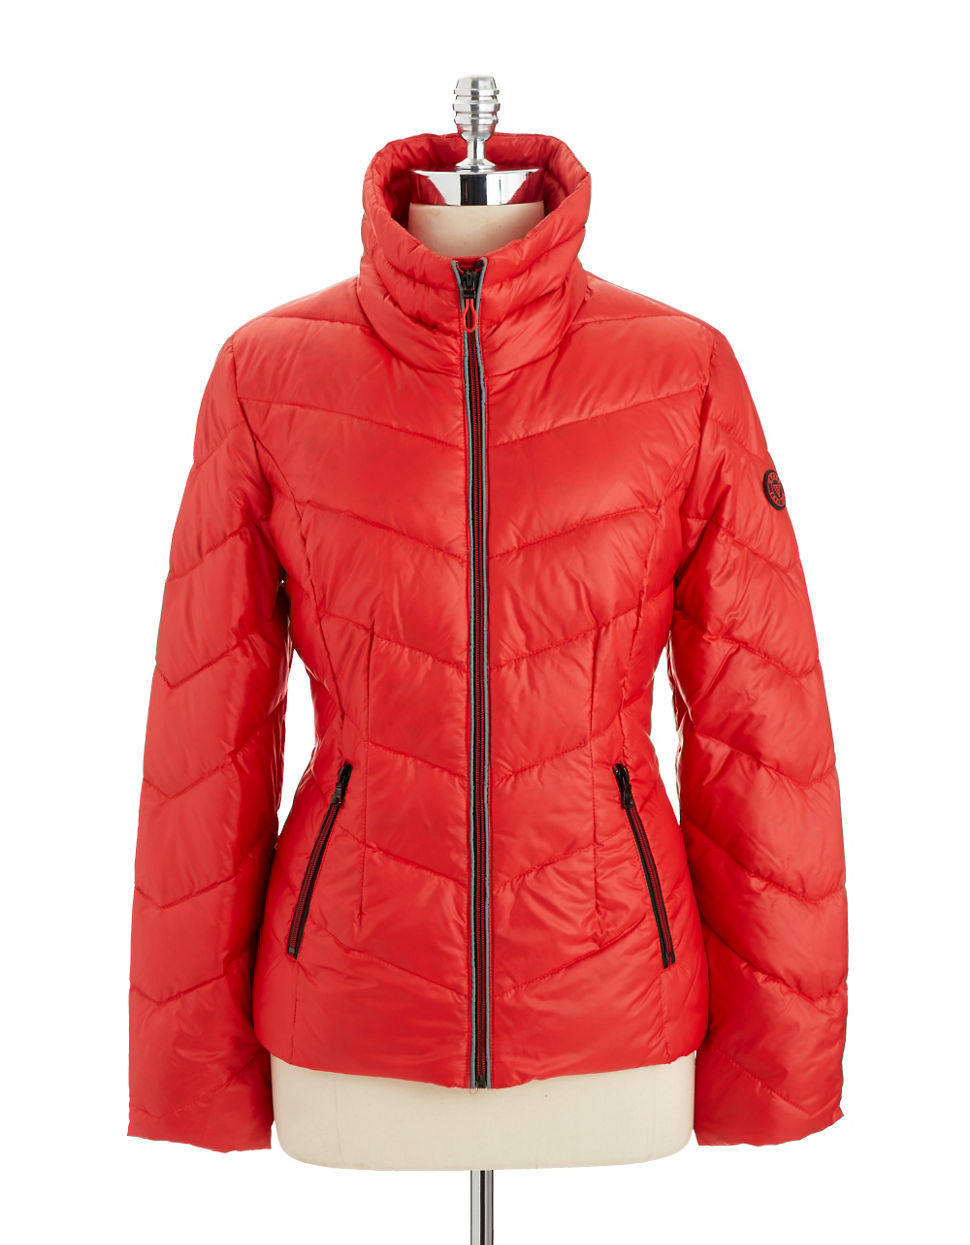 Lyst Guess Puffer Jacket In Red